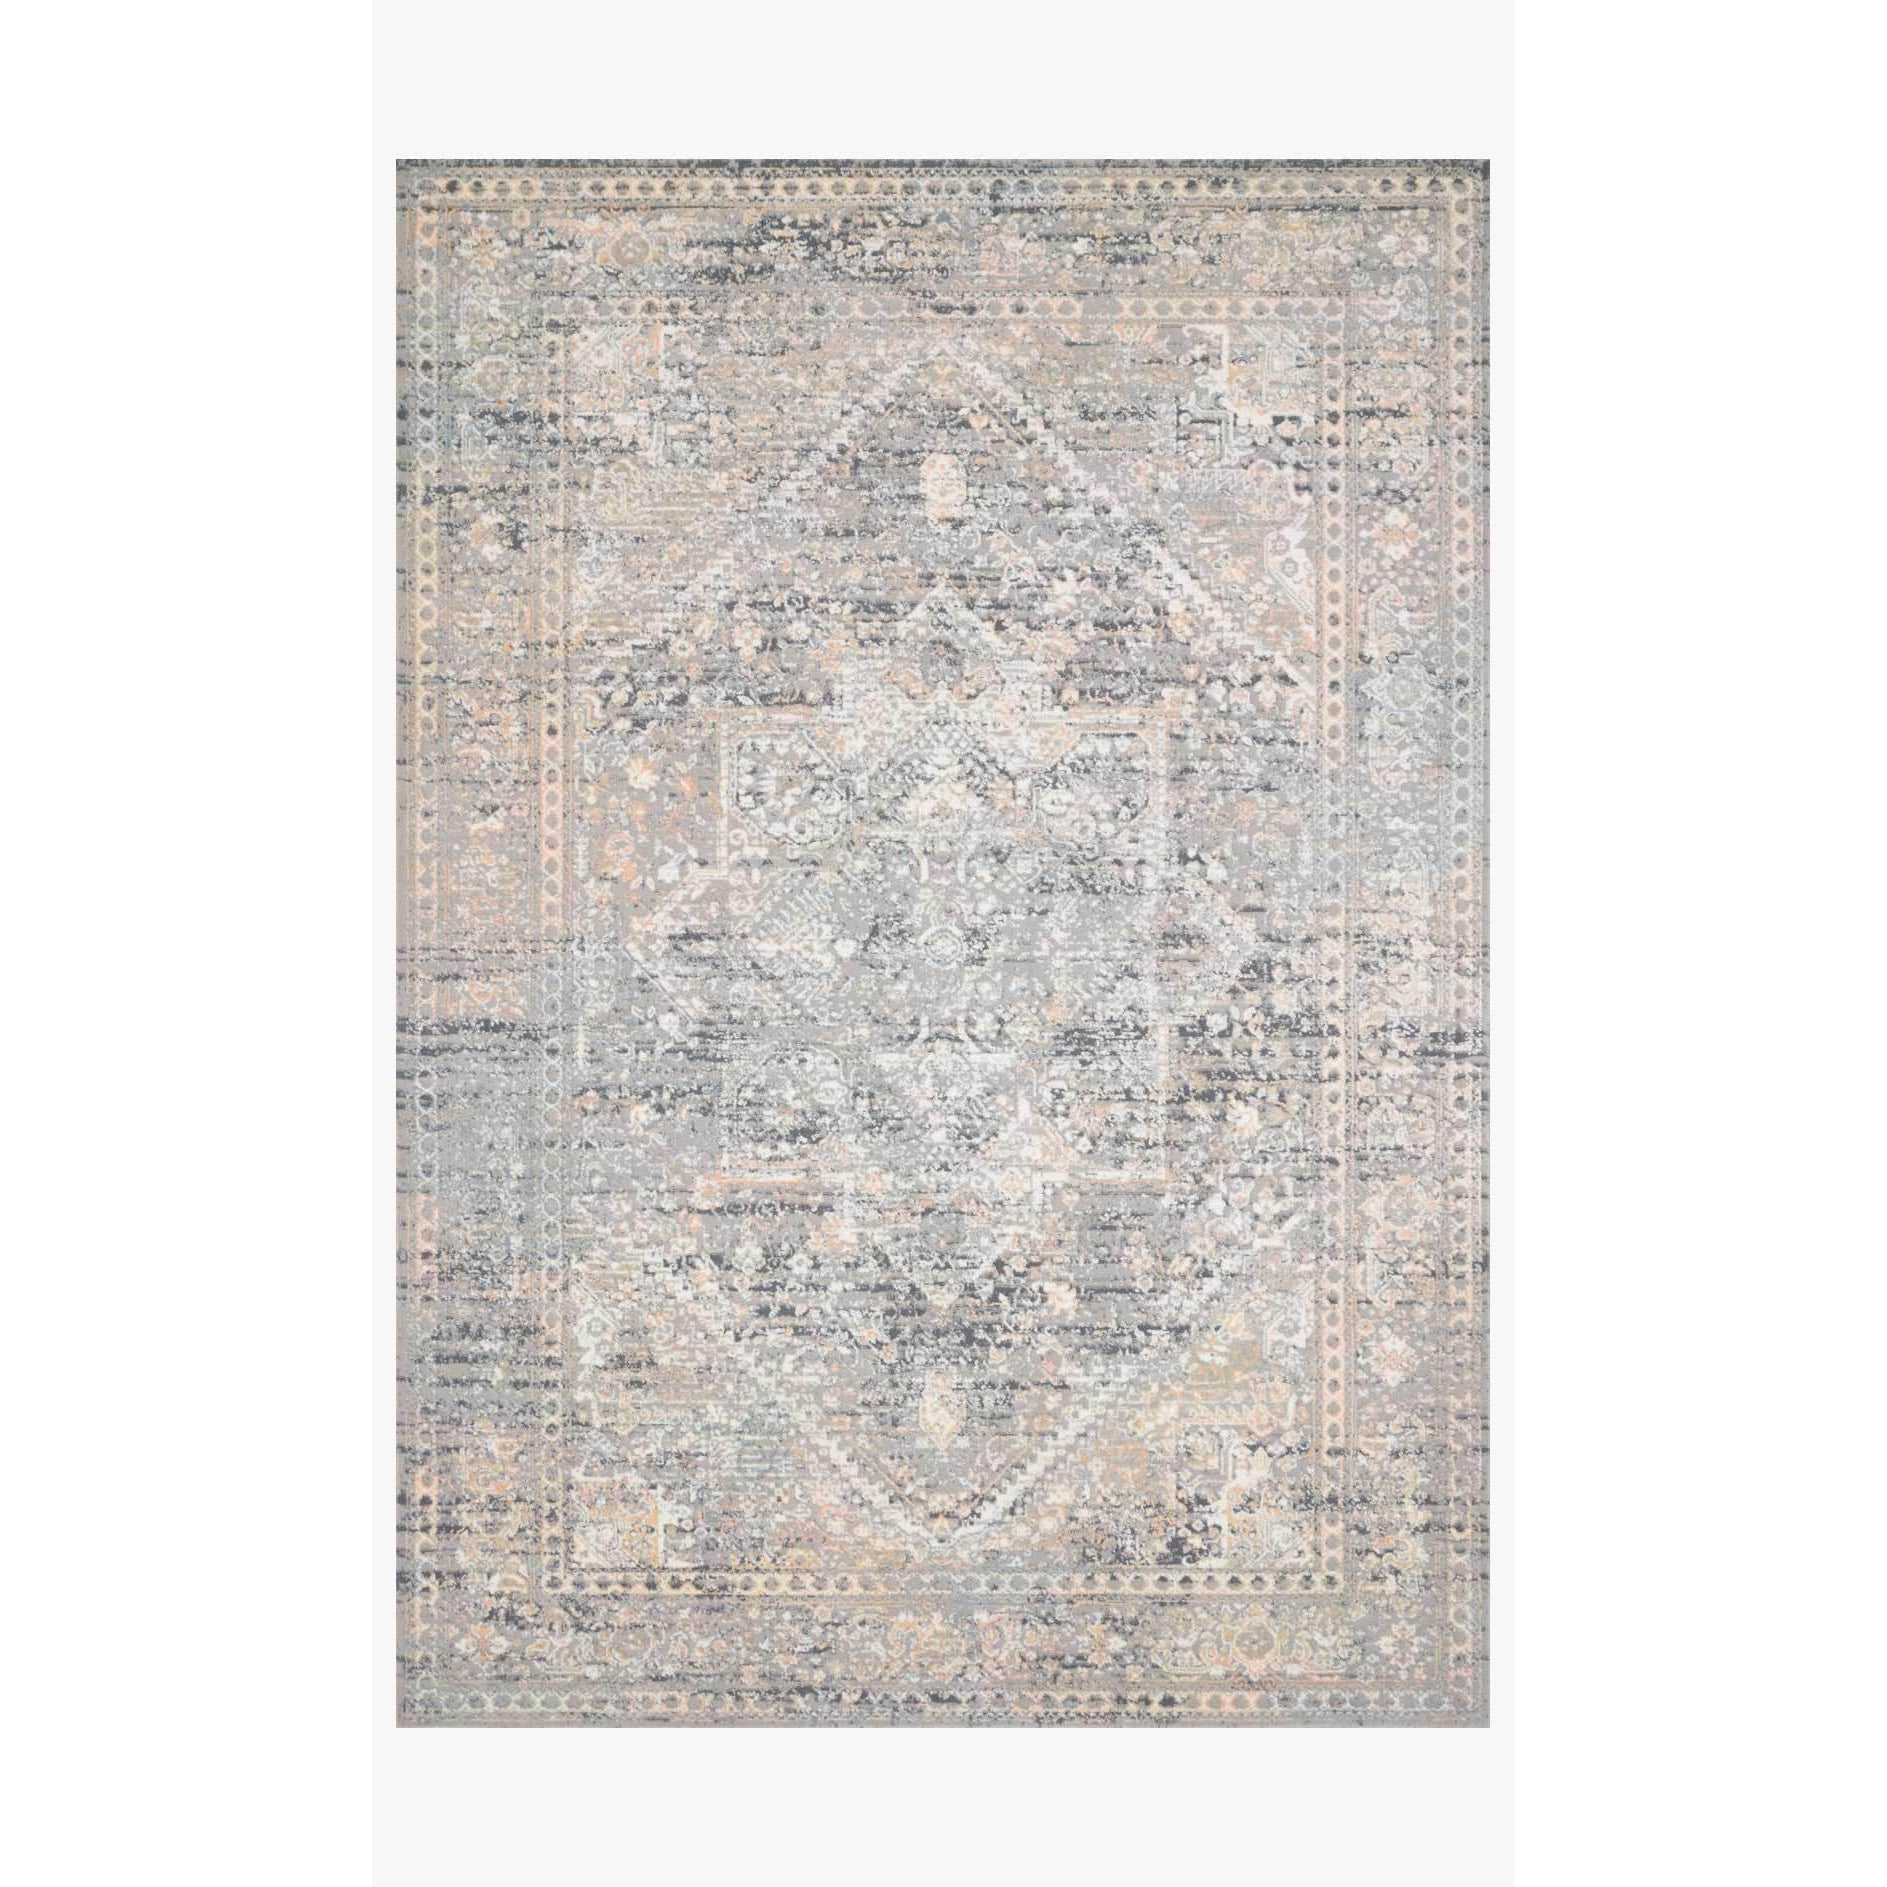 Lucia Rugs by Loloi - Grey / Sunset-Loloi Rugs-Blue Hand Home